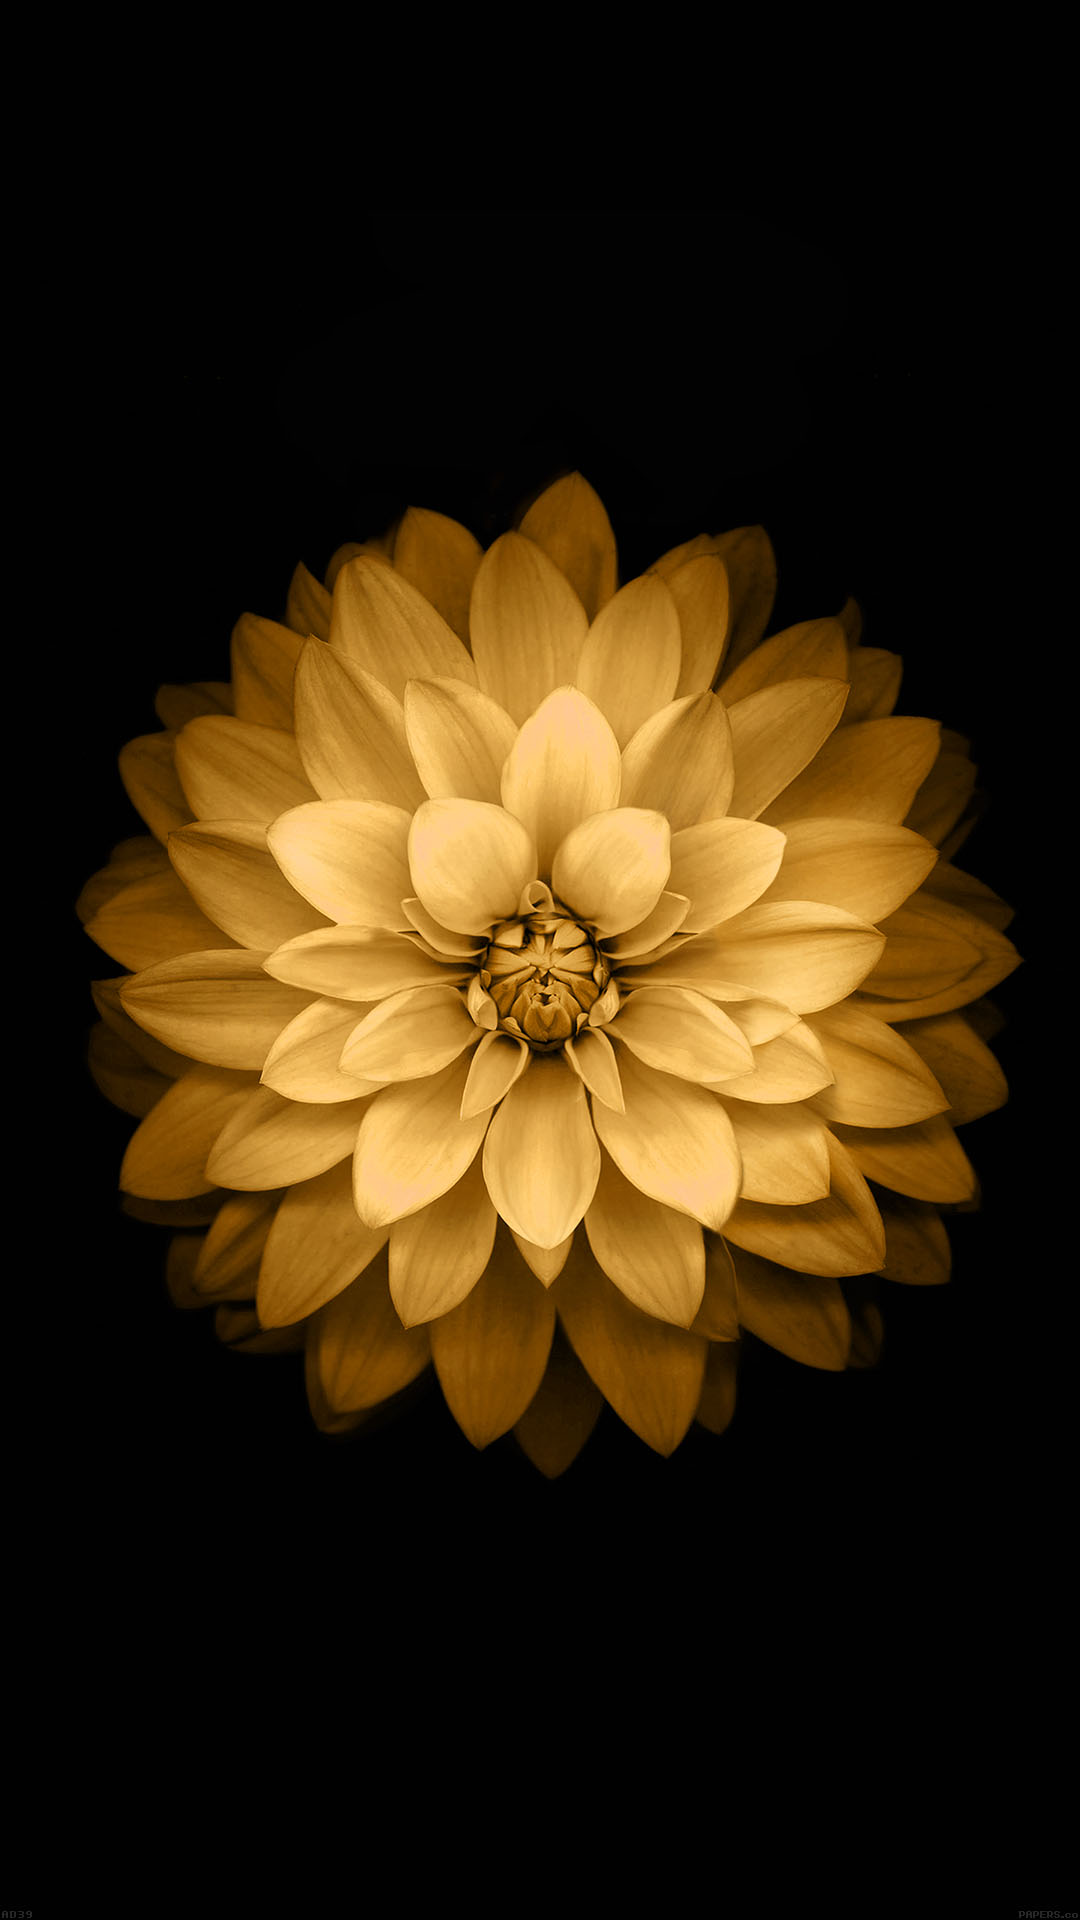 Iphone6papers Ad39 Apple Yellow Lotus Iphone6 Plus Ios8 Flower